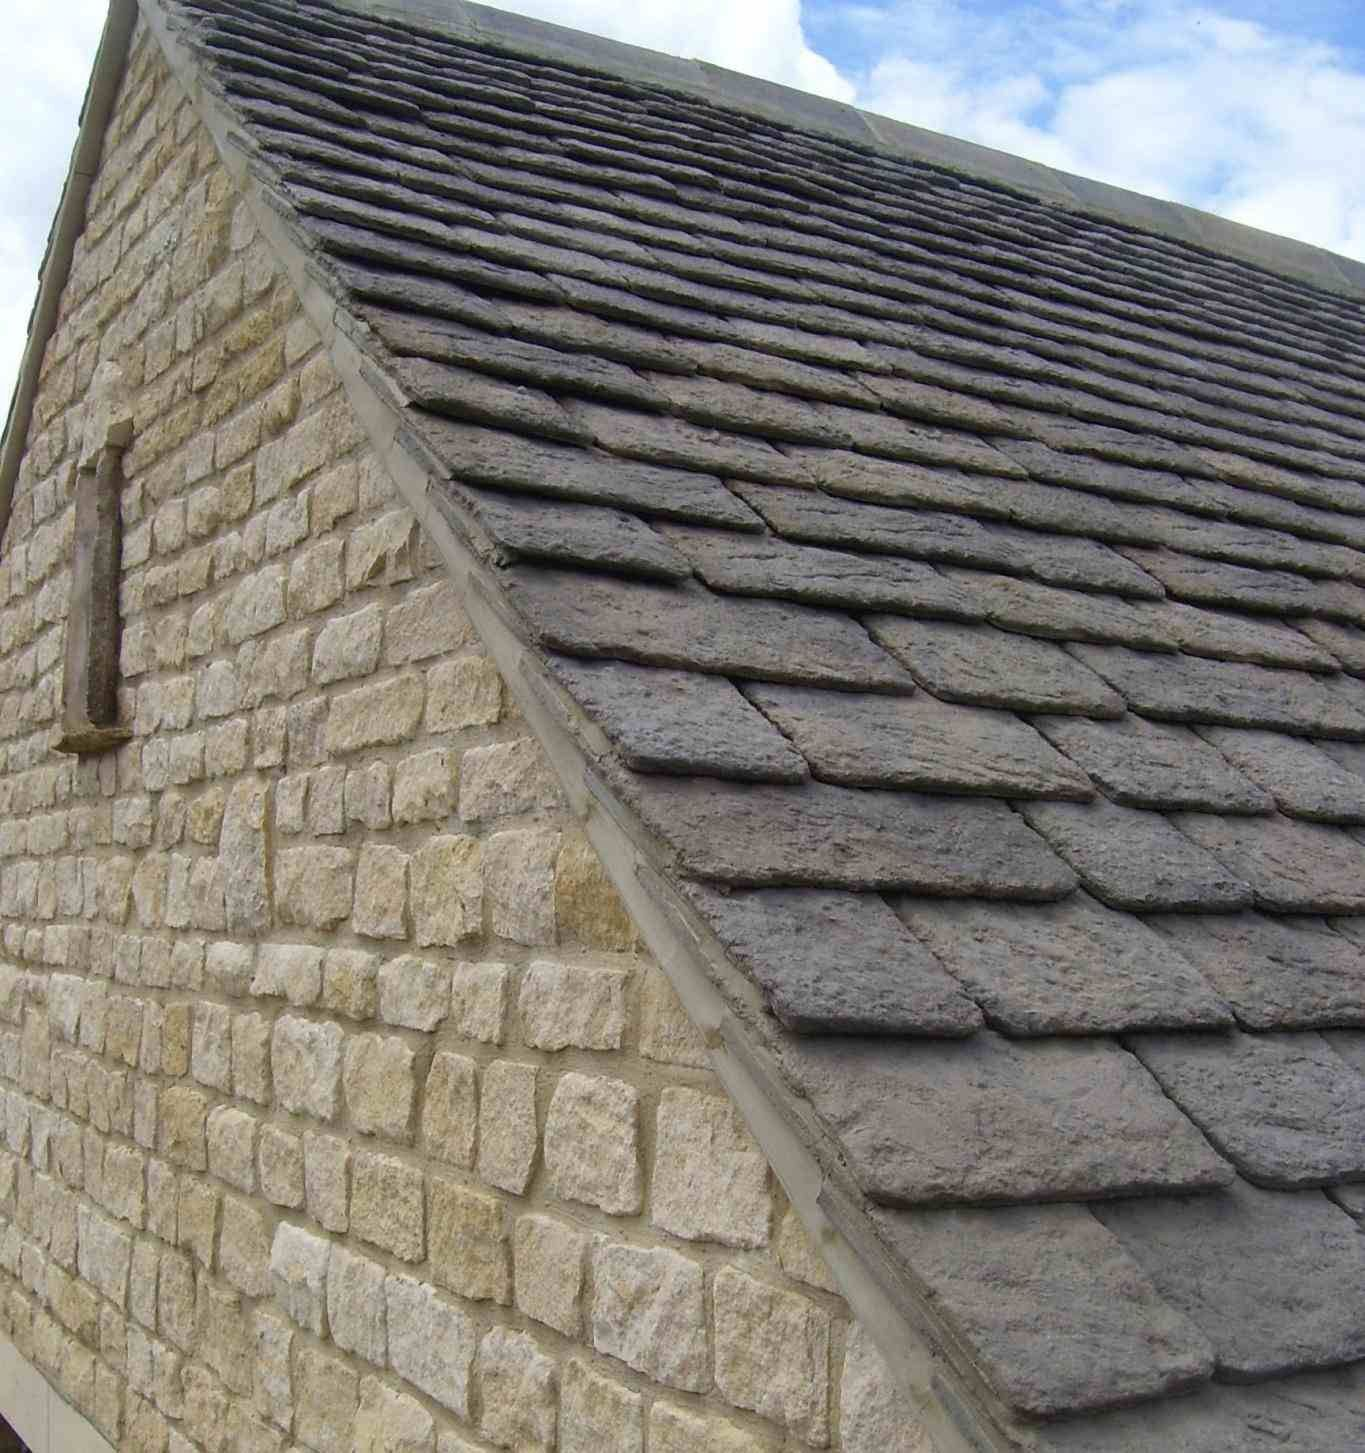 Slate Roofing Top Roofing, Slate roof tiles, Roof